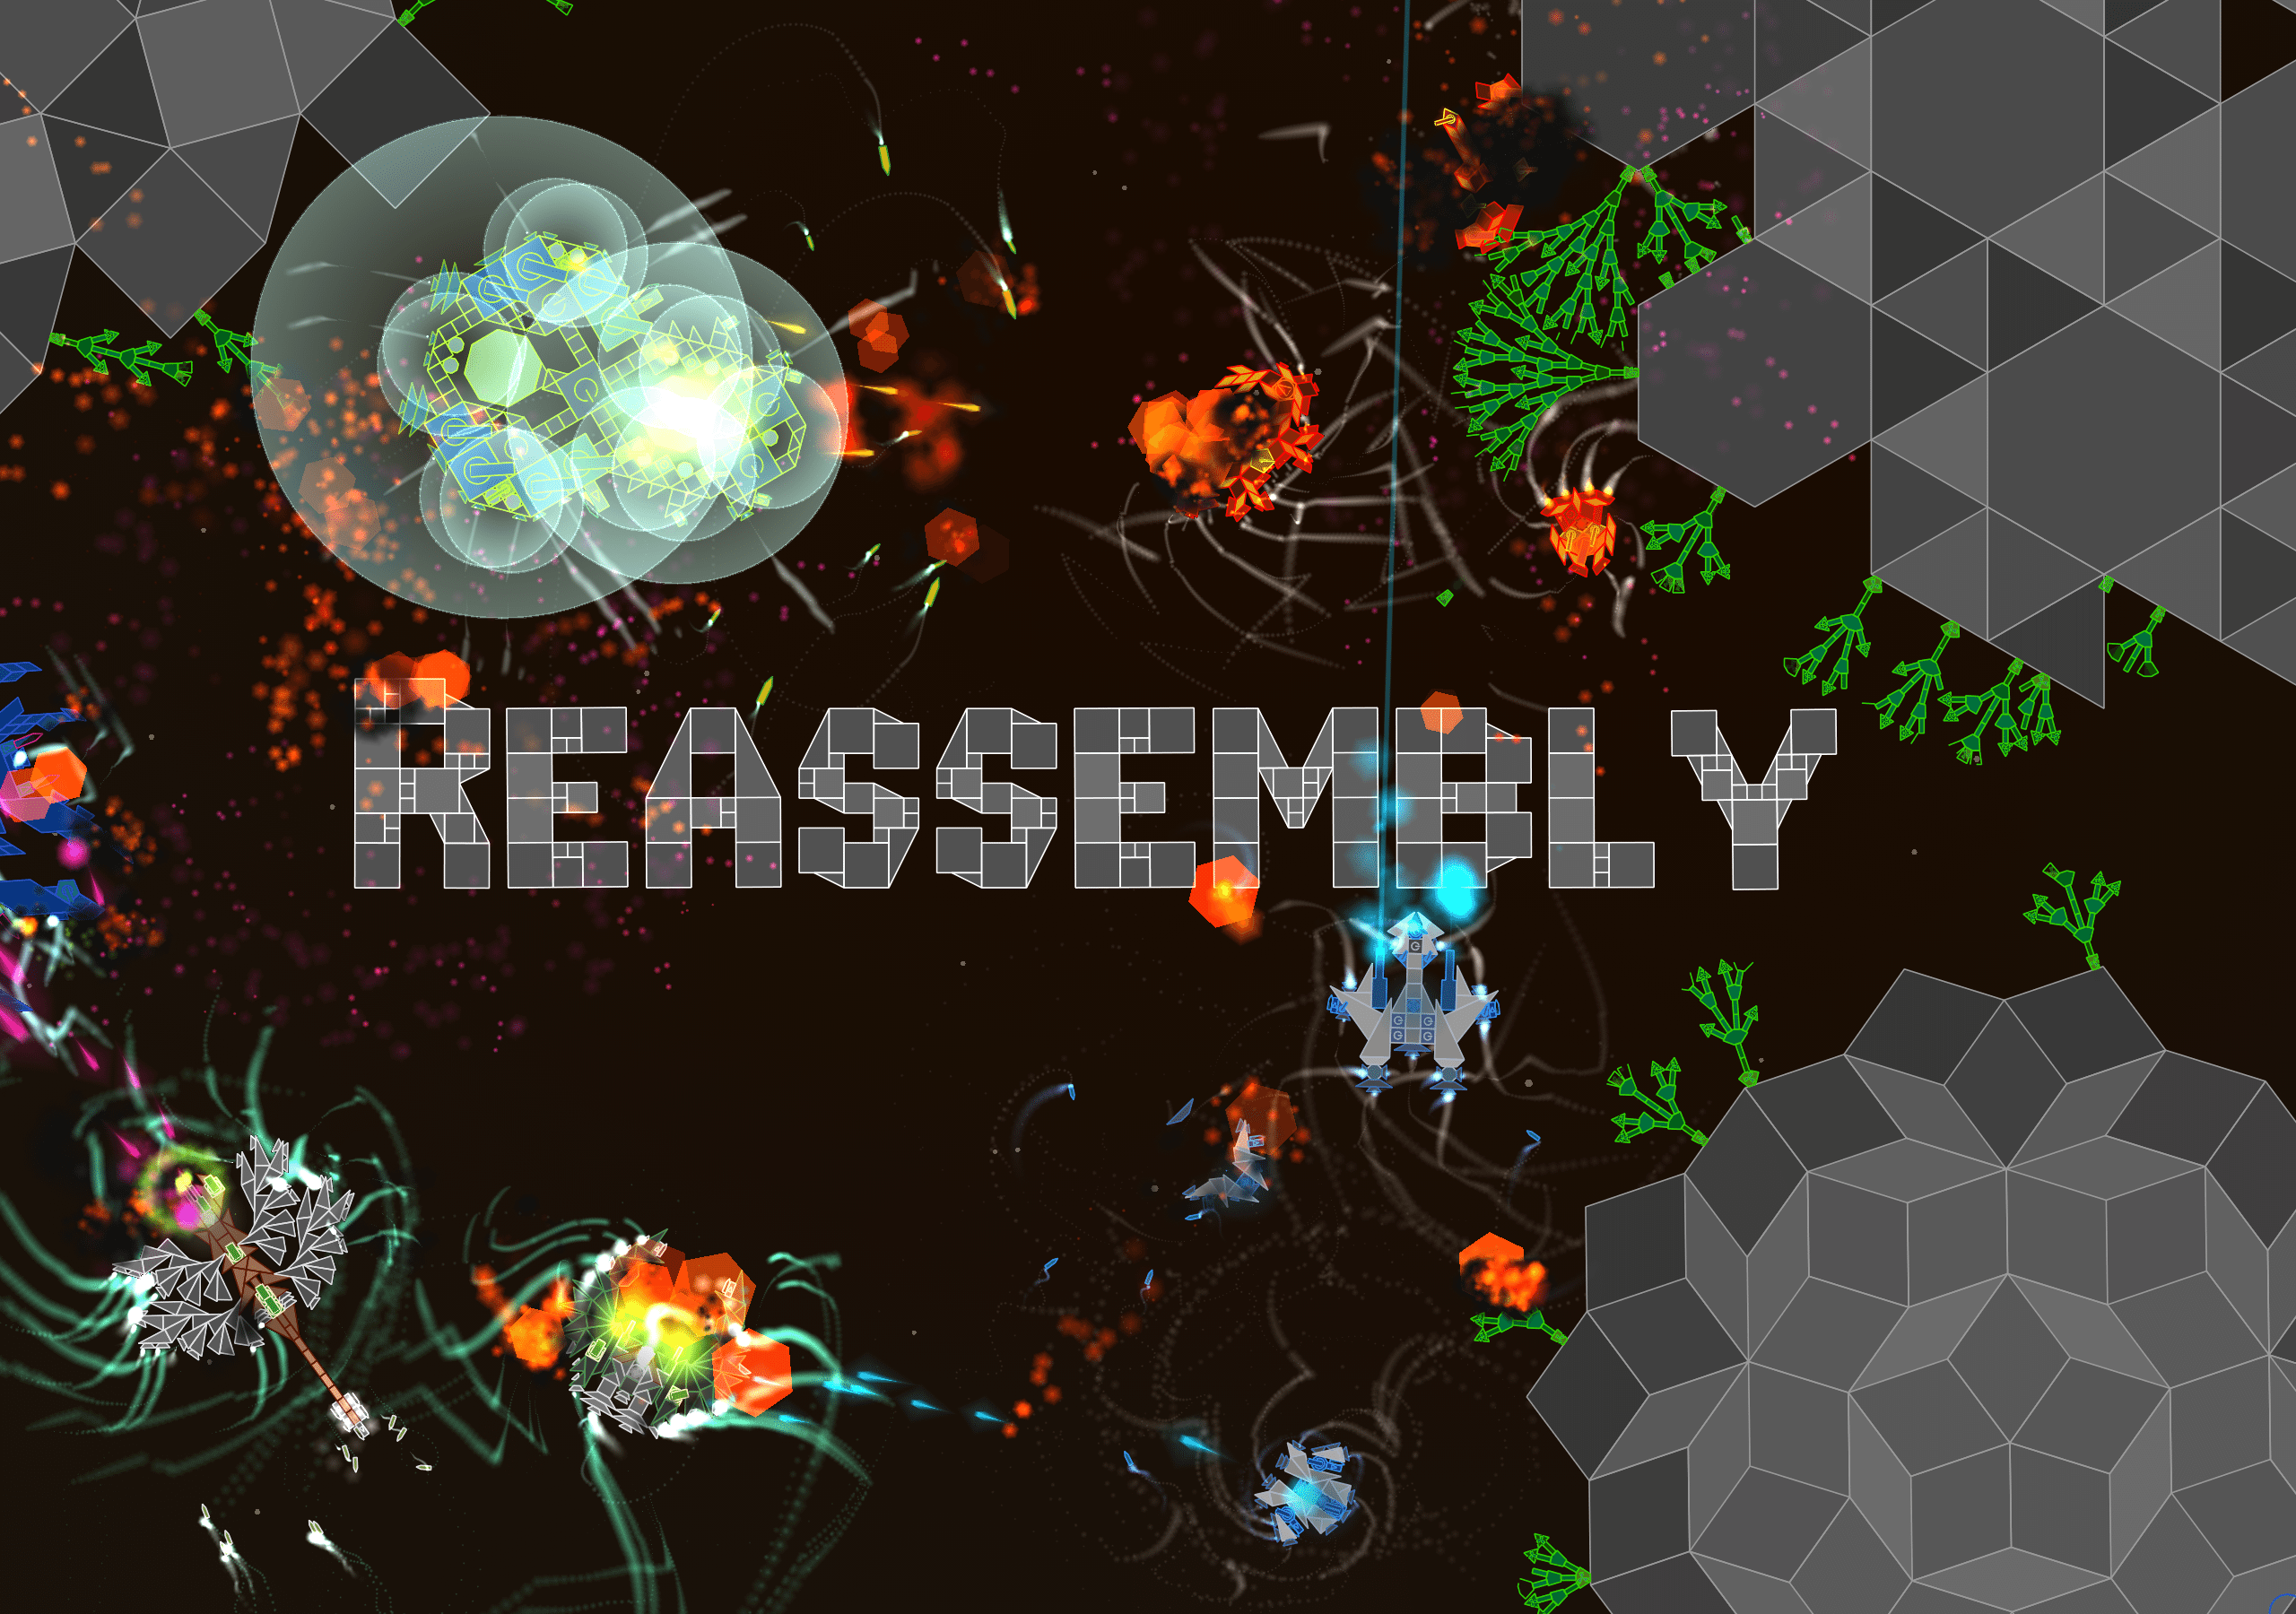 Review : Reassembly